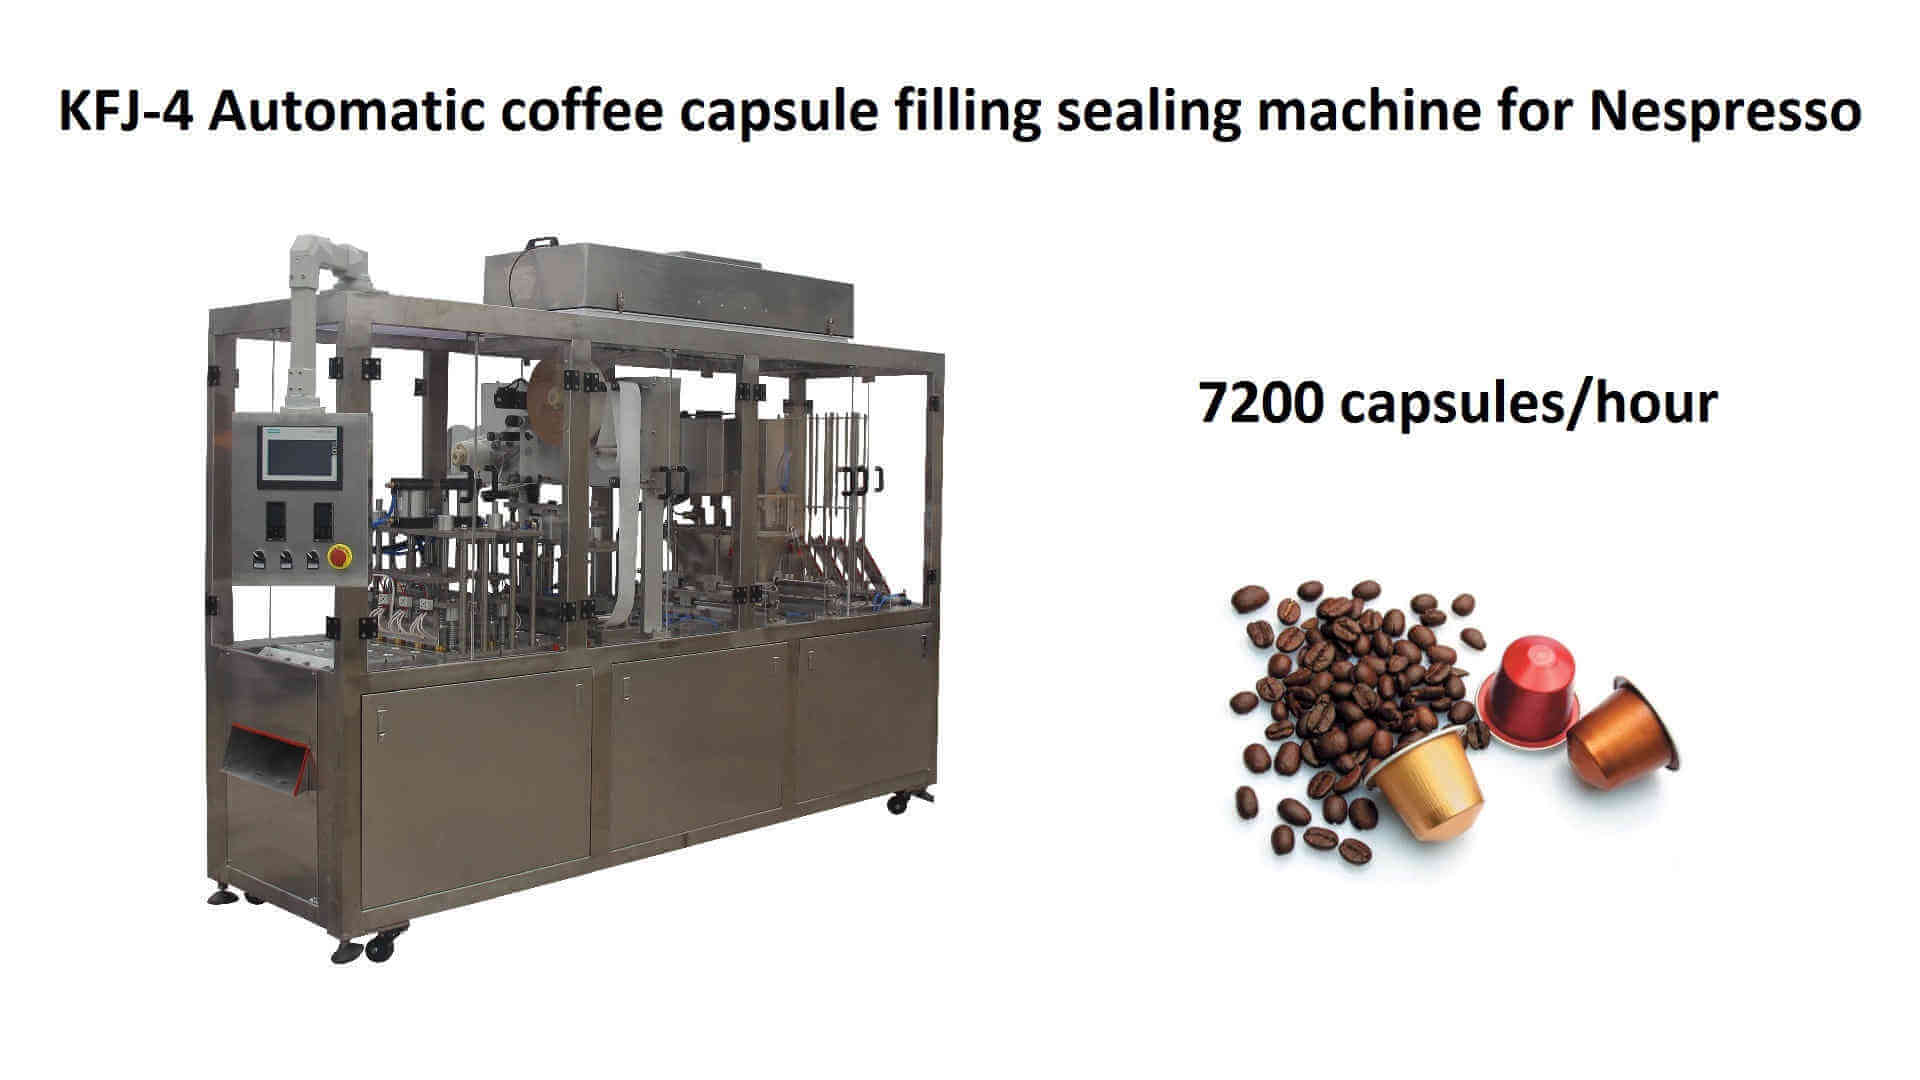 KFJ-4 Automatic coffee capsule filling and sealing machine for Nespresso